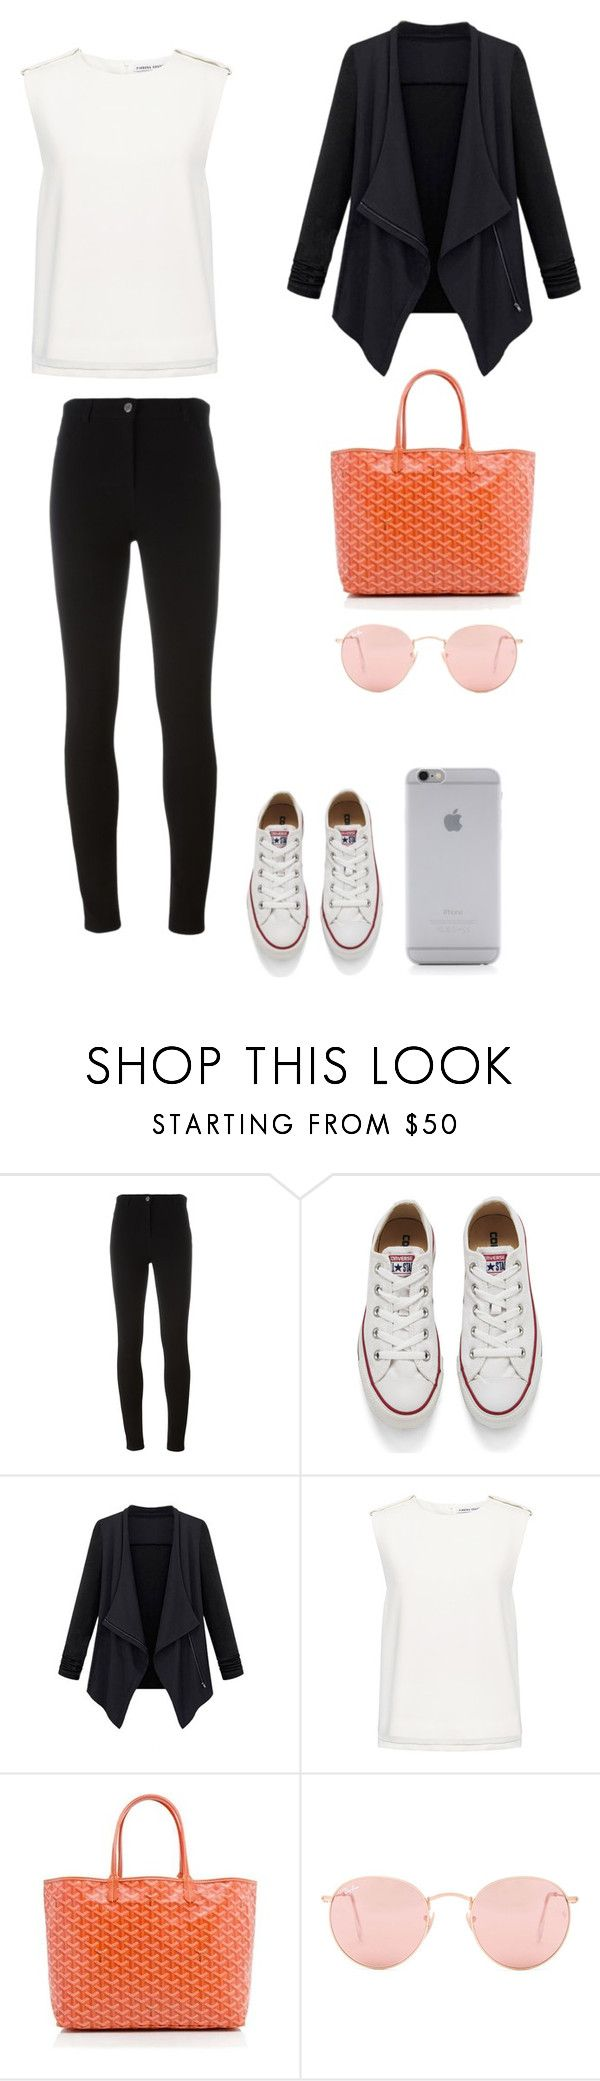 """""""Sem título #142"""" by mcbscap on Polyvore featuring moda, Givenchy, Converse, Finders Keepers, Goyard, Ray-Ban e Native Union"""